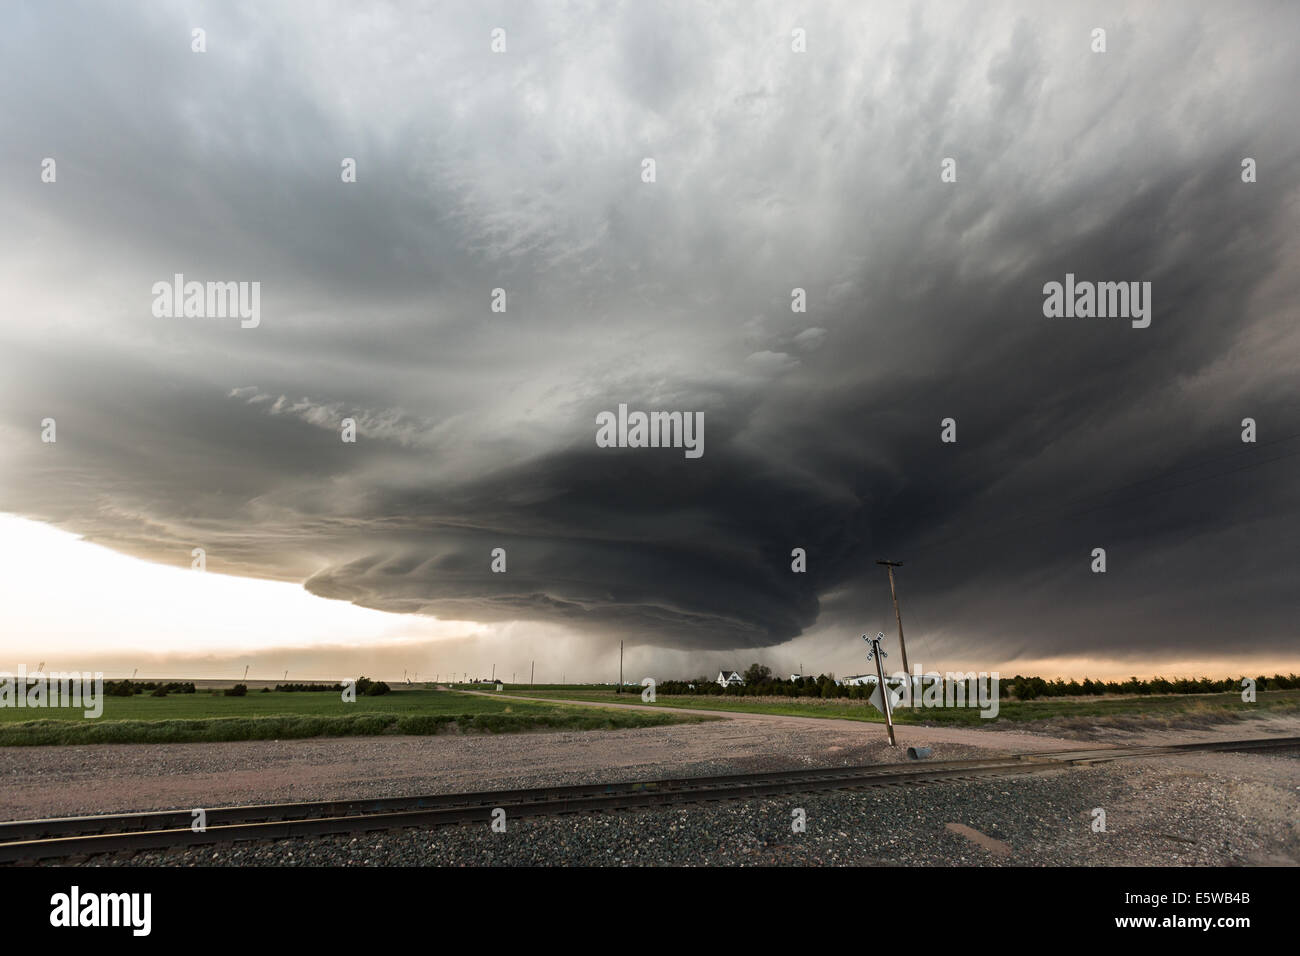 A classic high plains low precipitation supercell thunderstorm taking on a mothership striated appearance with hail - Stock Image